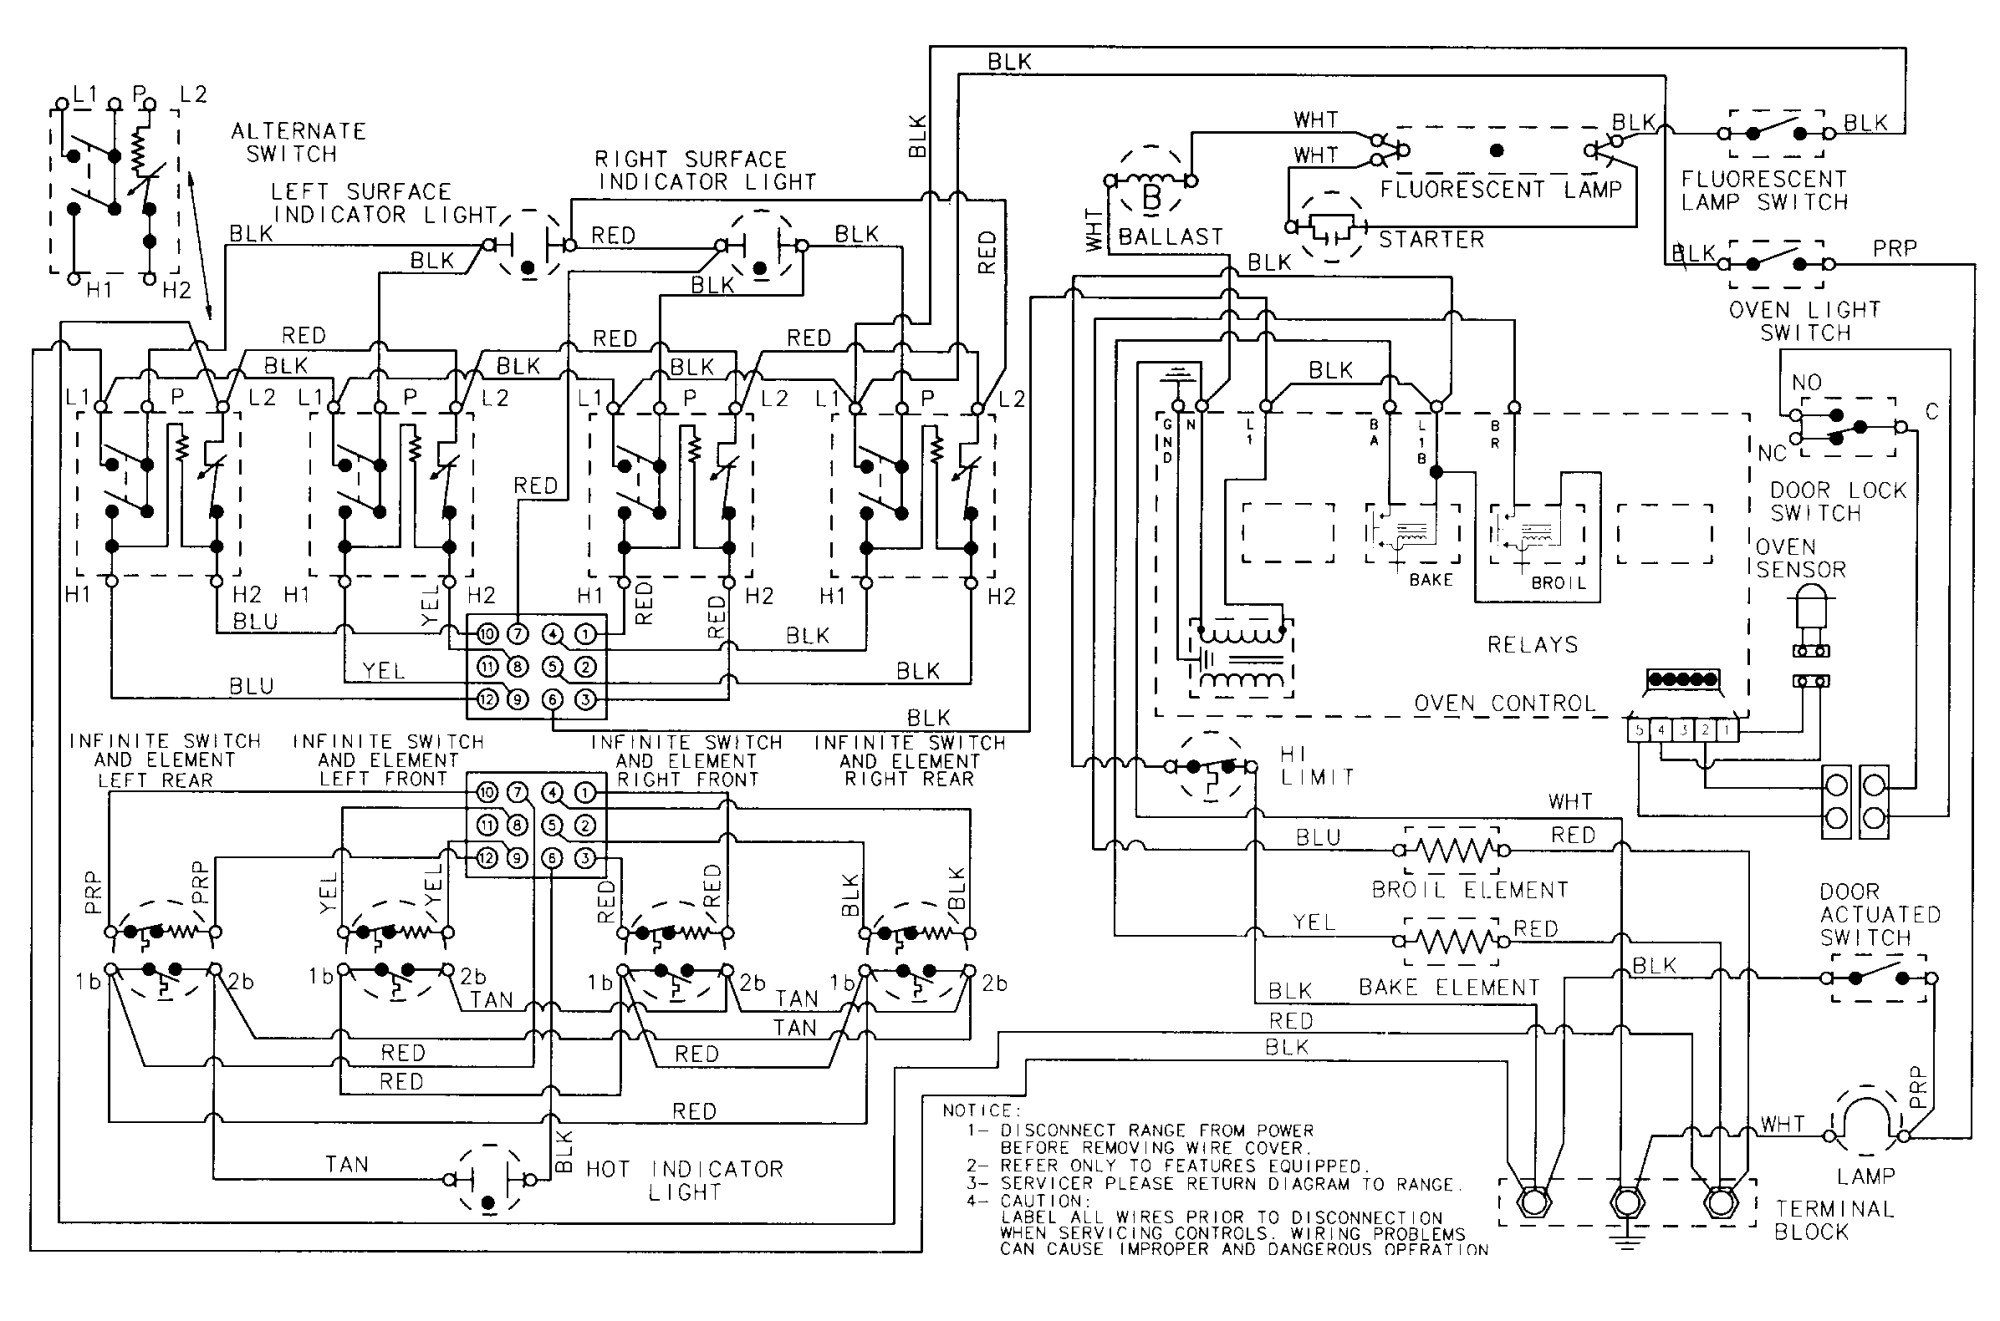 hight resolution of pump control panel wiring diagram schematic collection cre9600 range wiring information parts diagram control panel